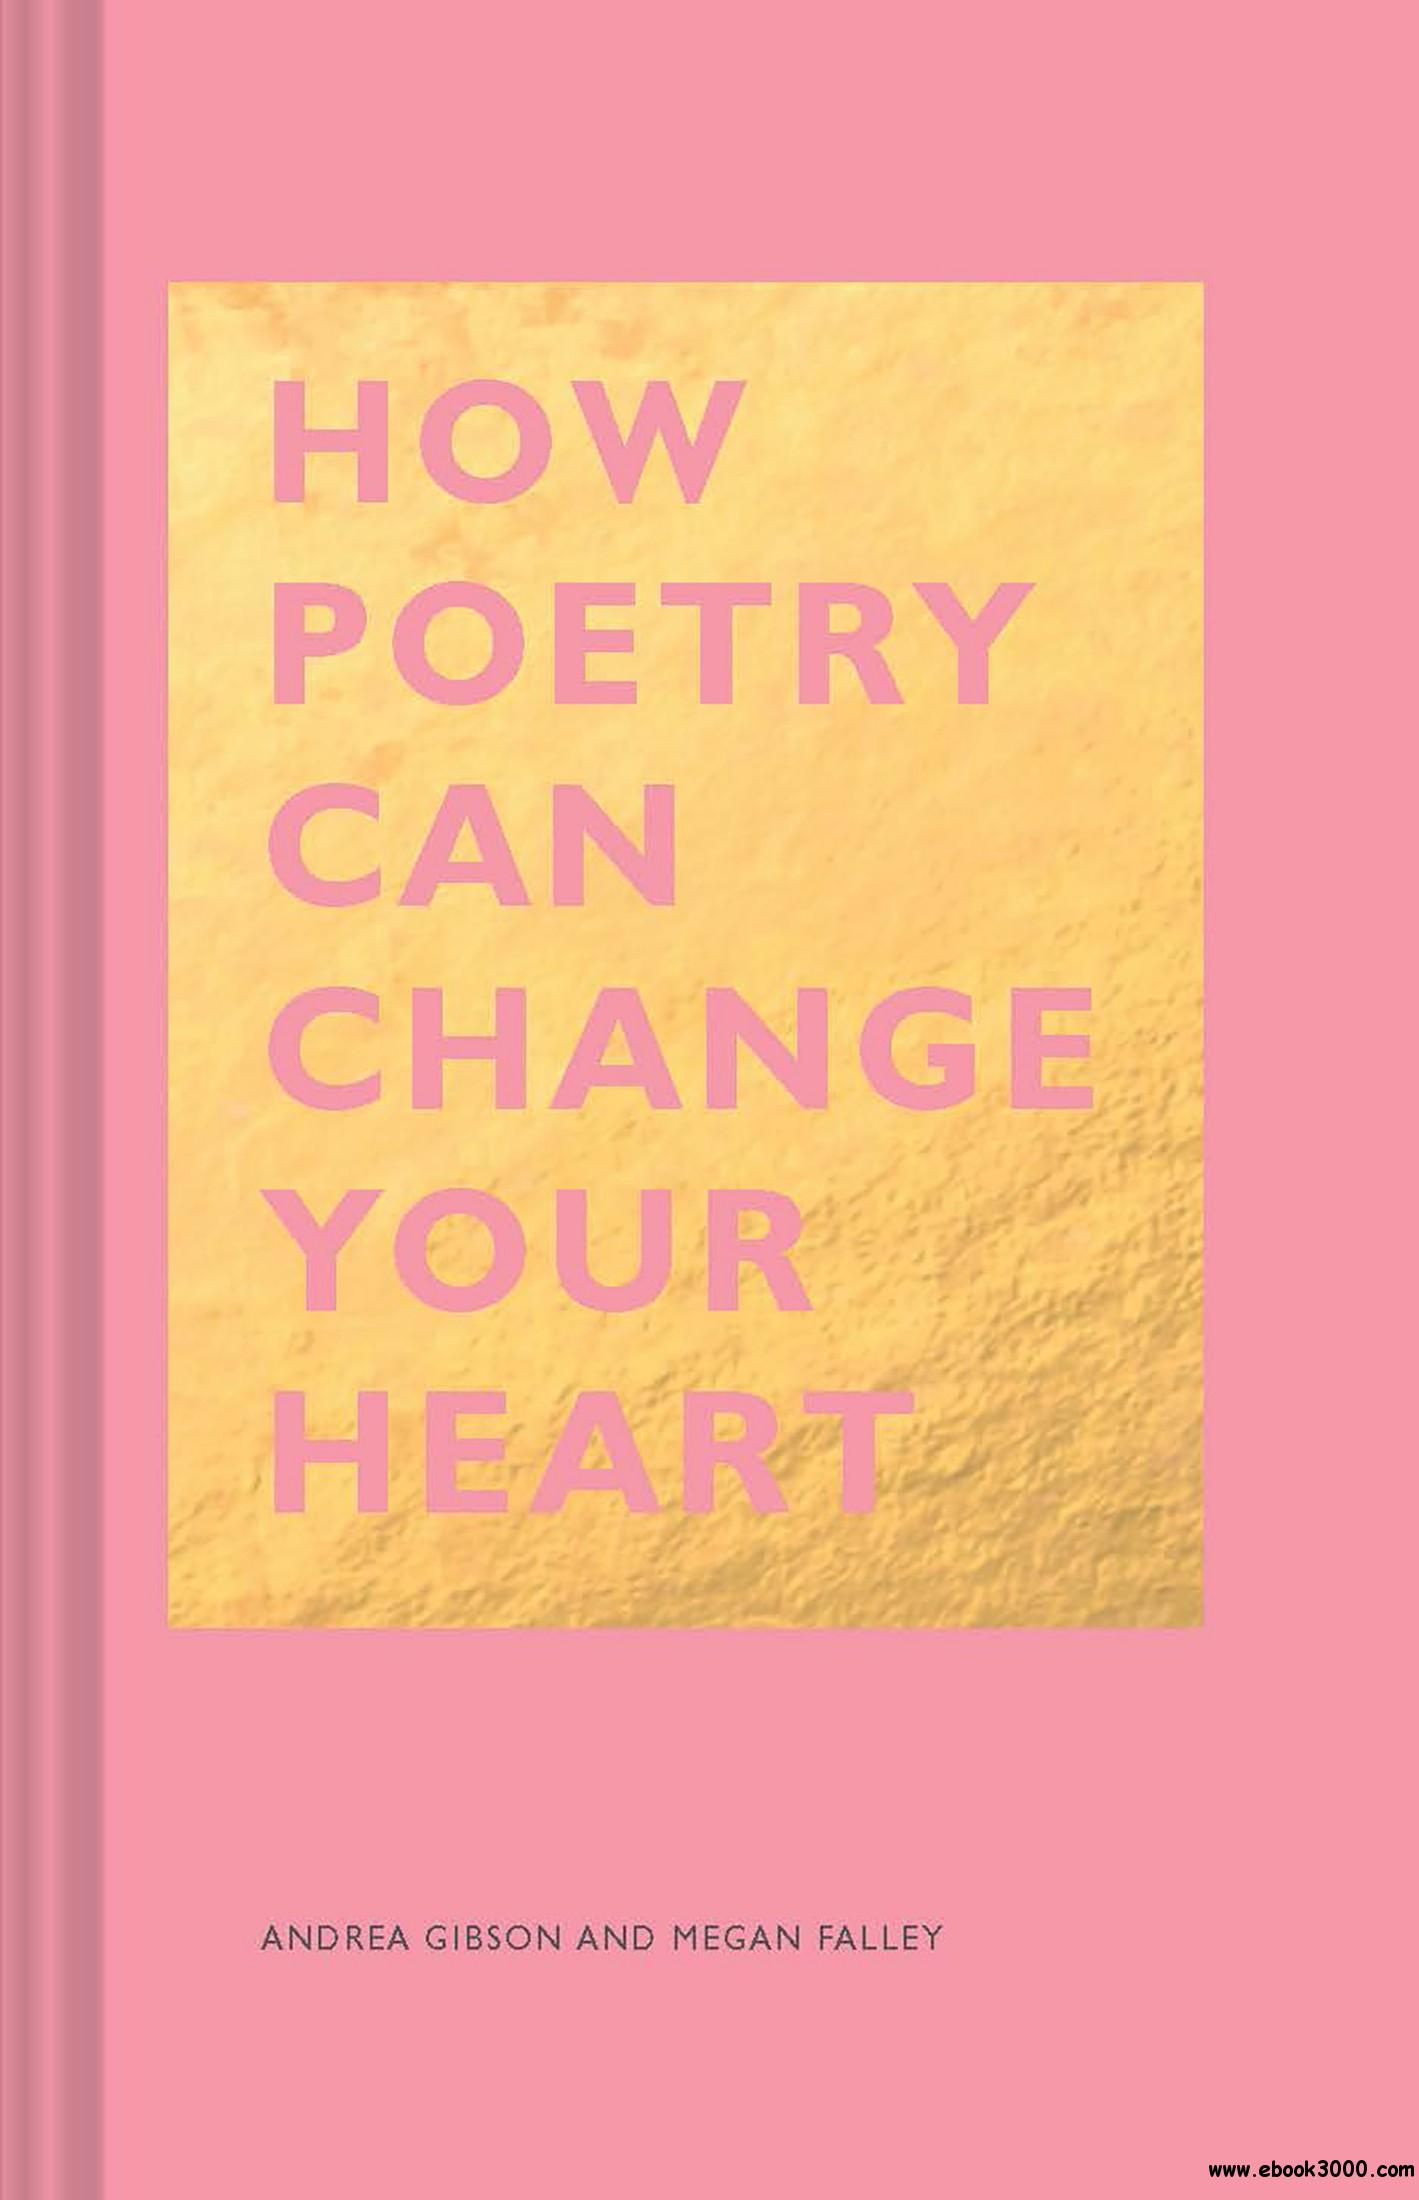 How Poetry Can Change Your Heart (The HOW)